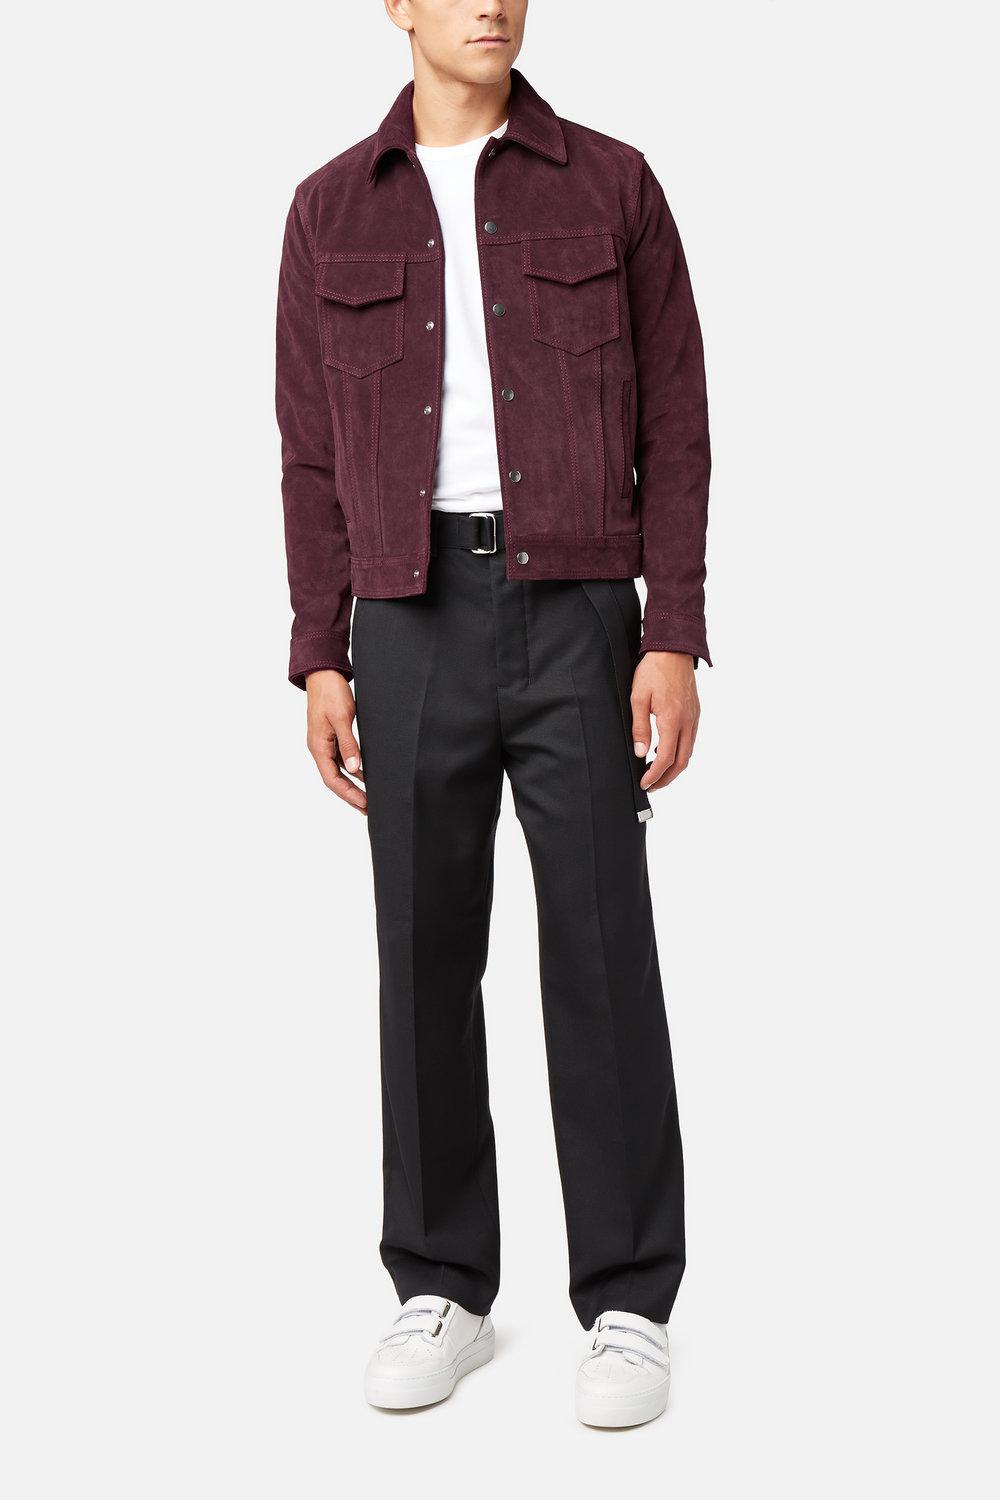 AMI Suede Jacket in Red for Men